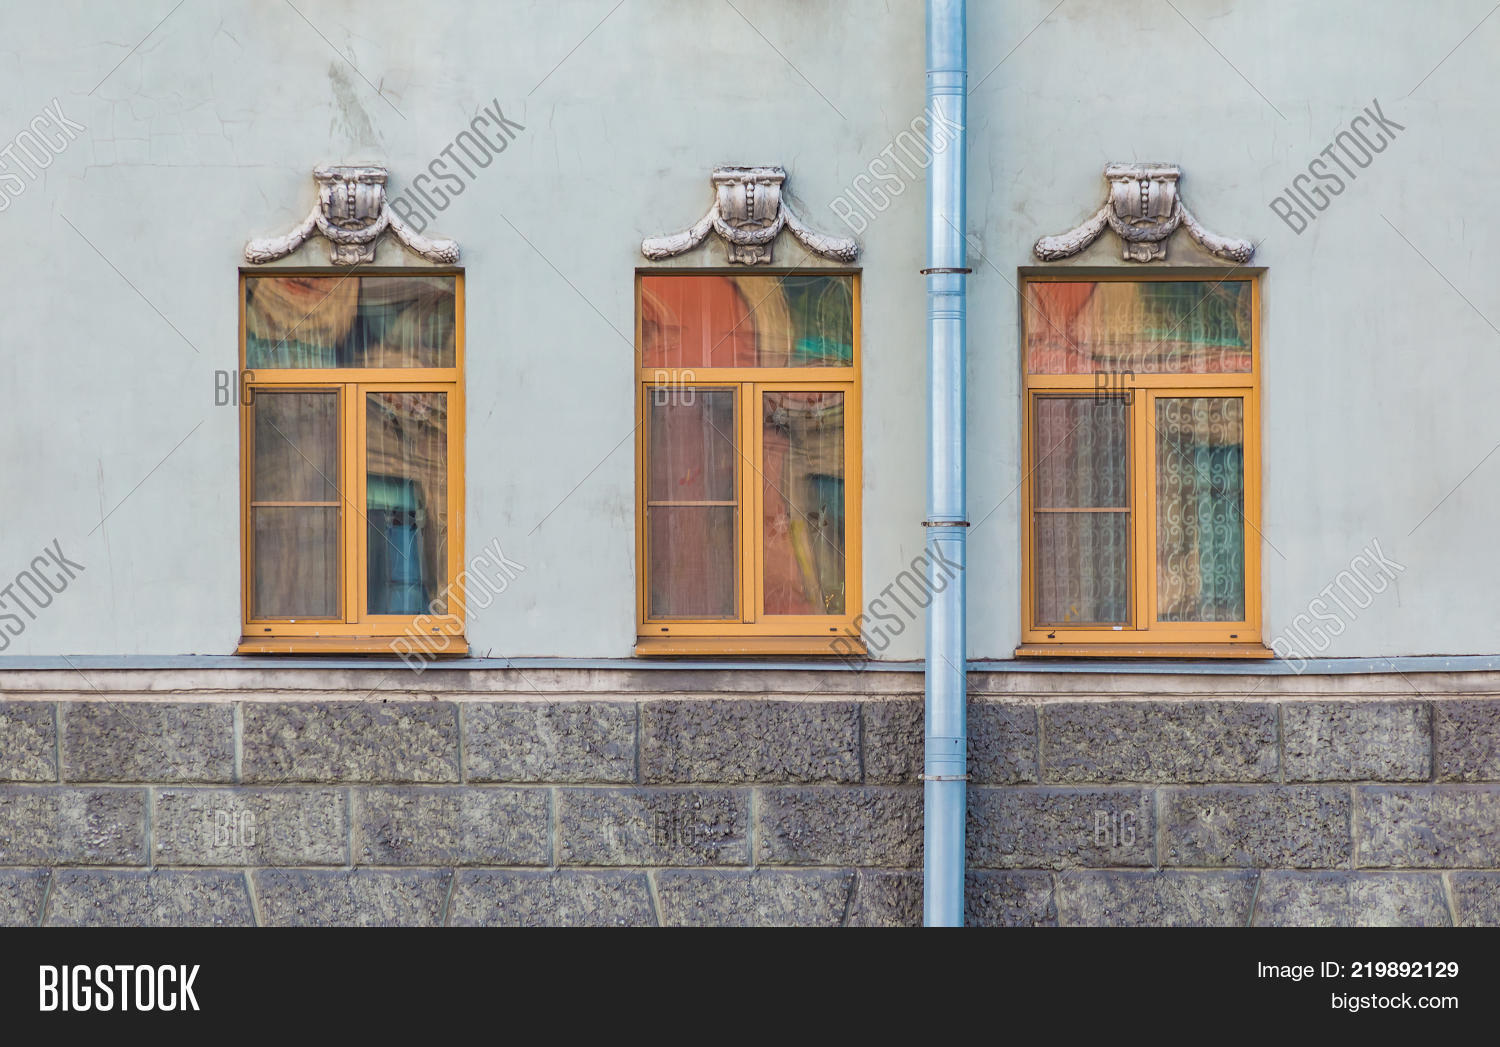 Three Windows In A Row On The 219892129 Image Stock